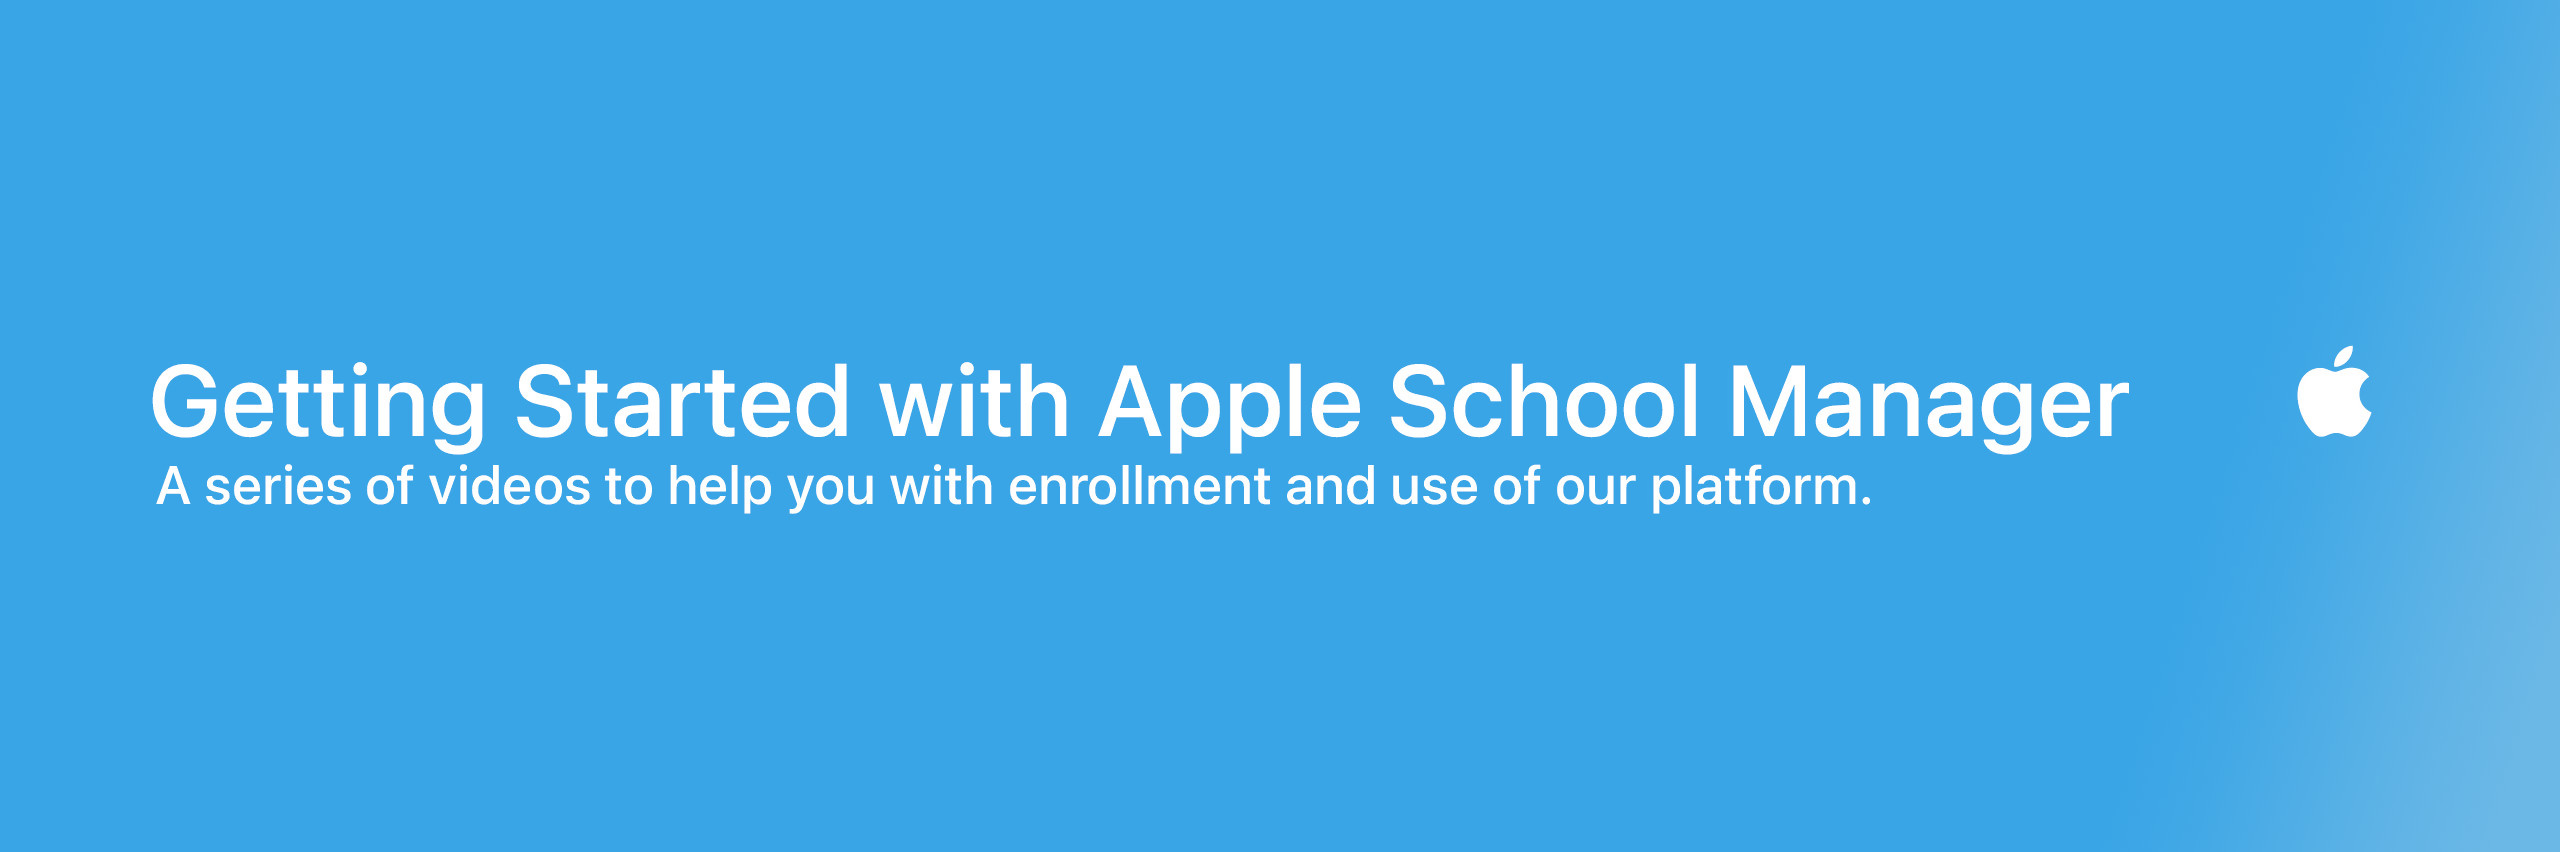 Getting Started with Apple School Manager (2021)